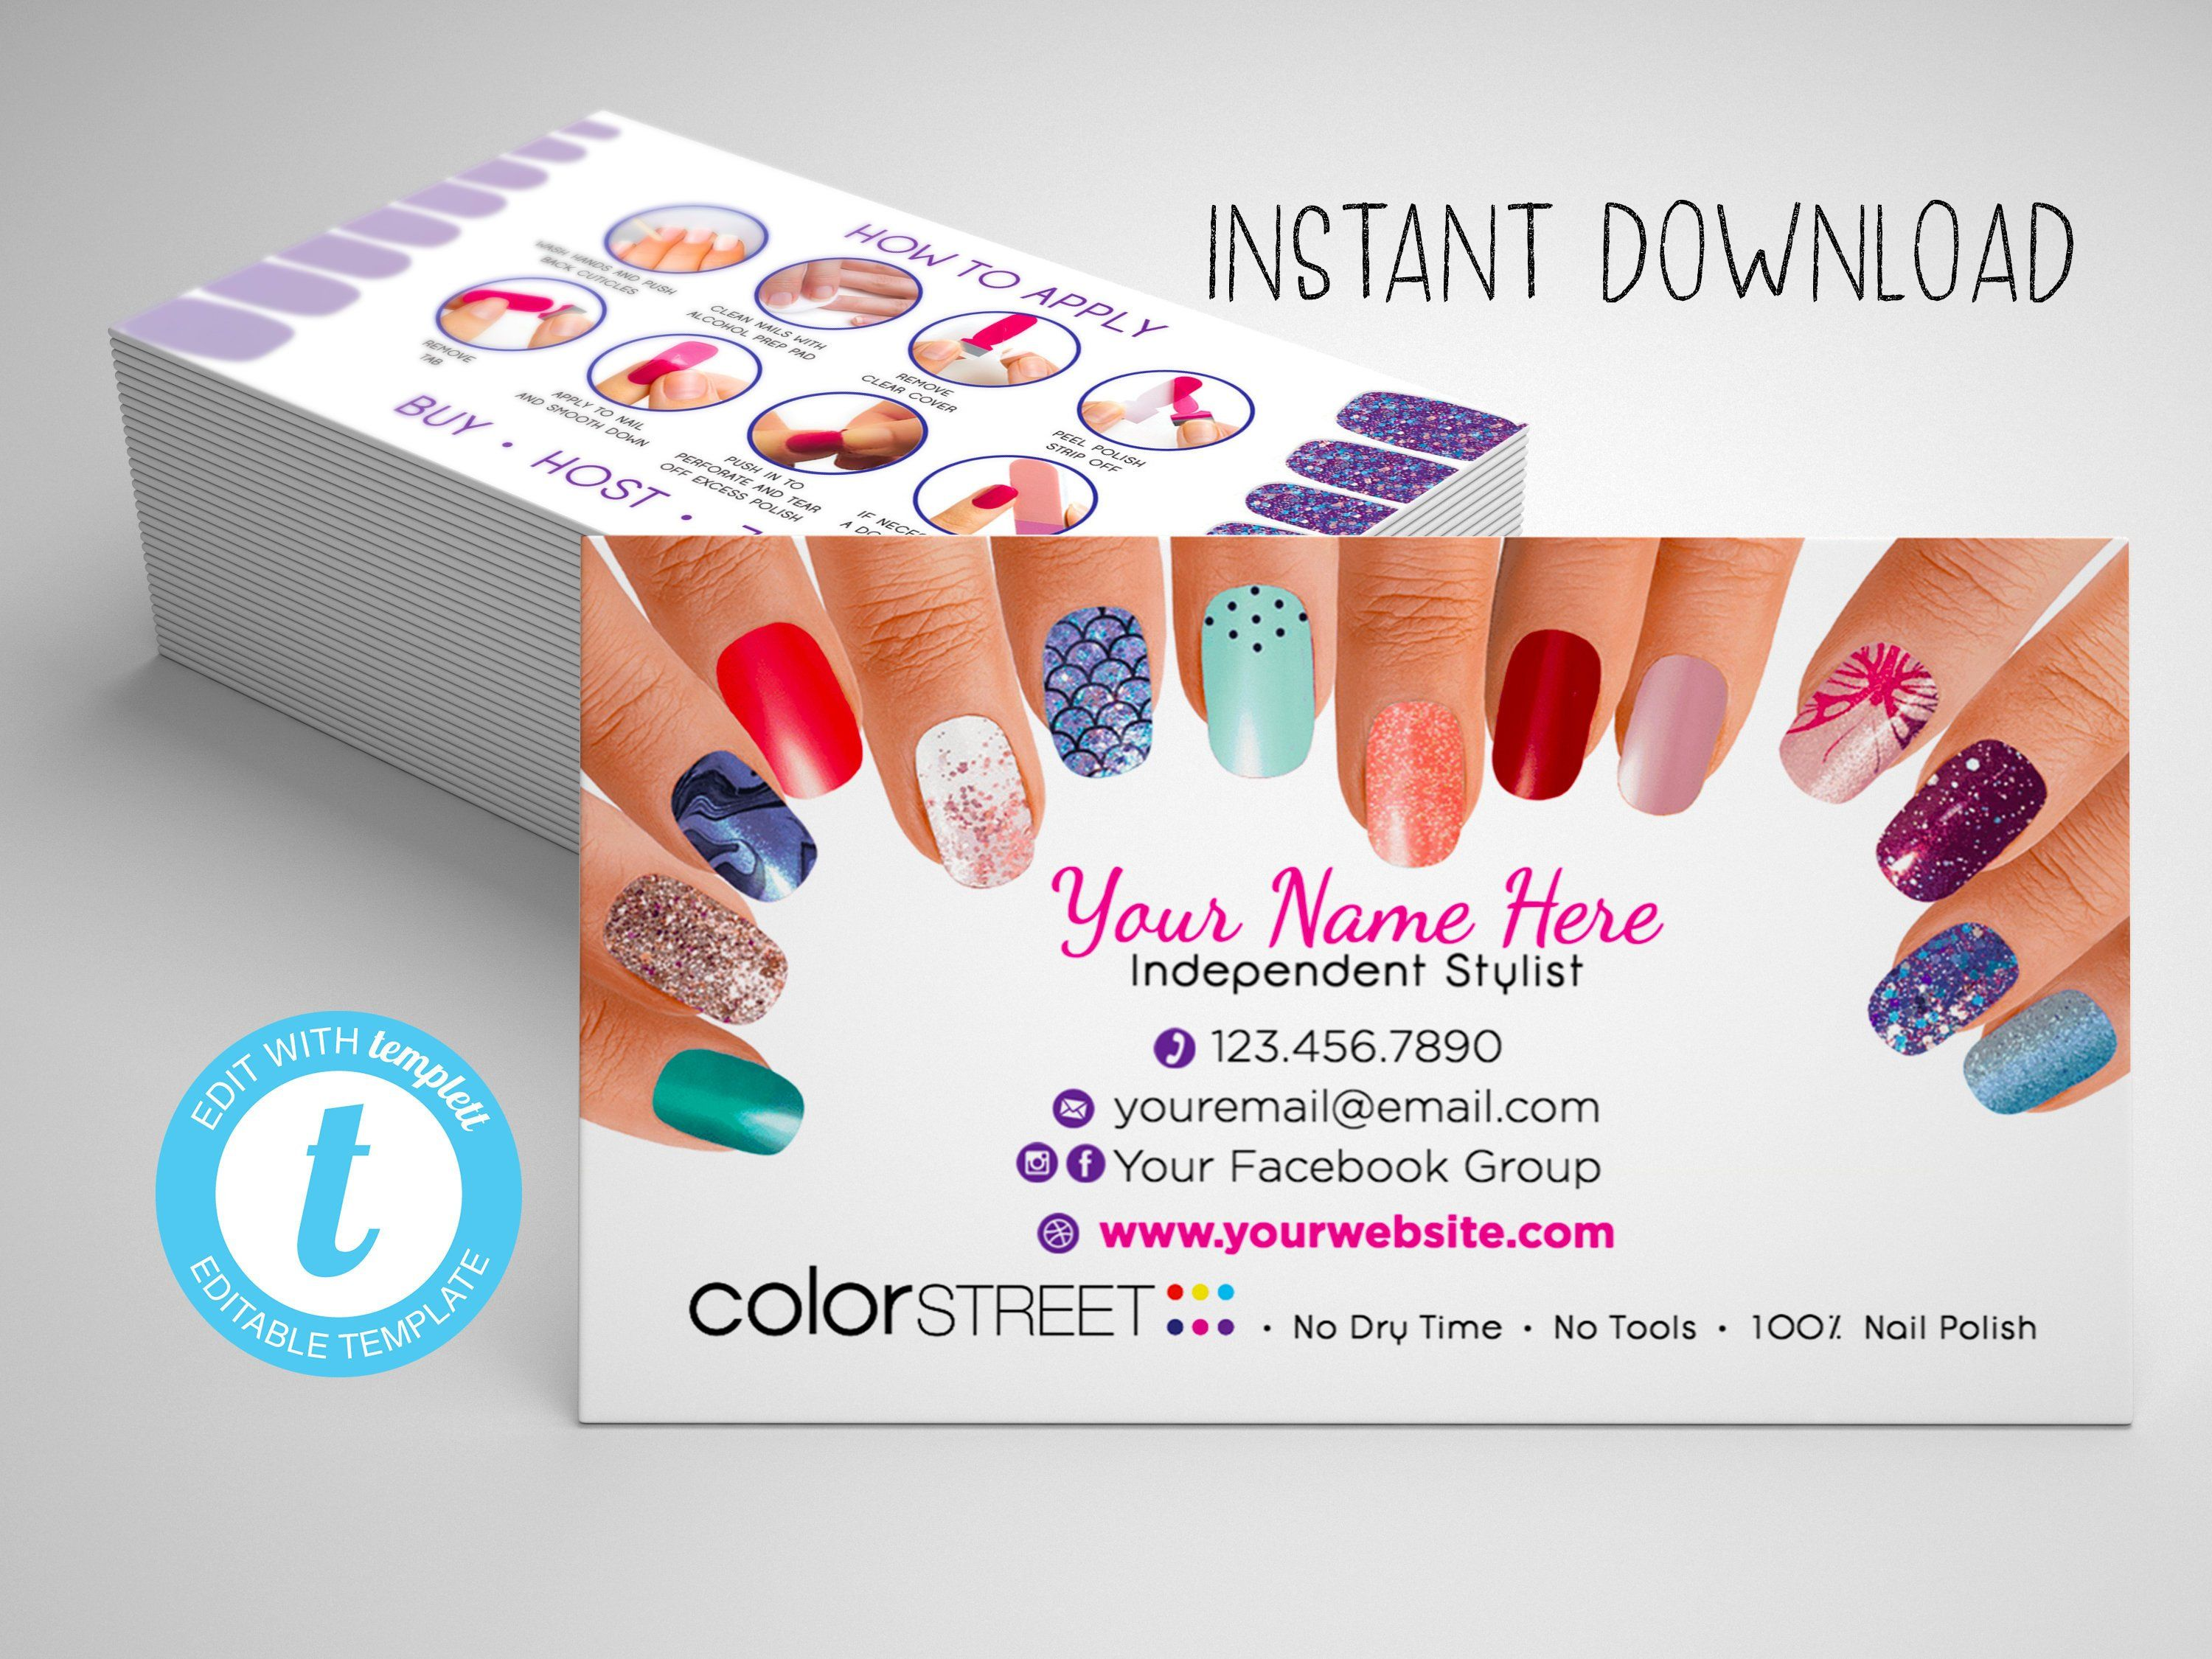 Color street business card template painted nails editable